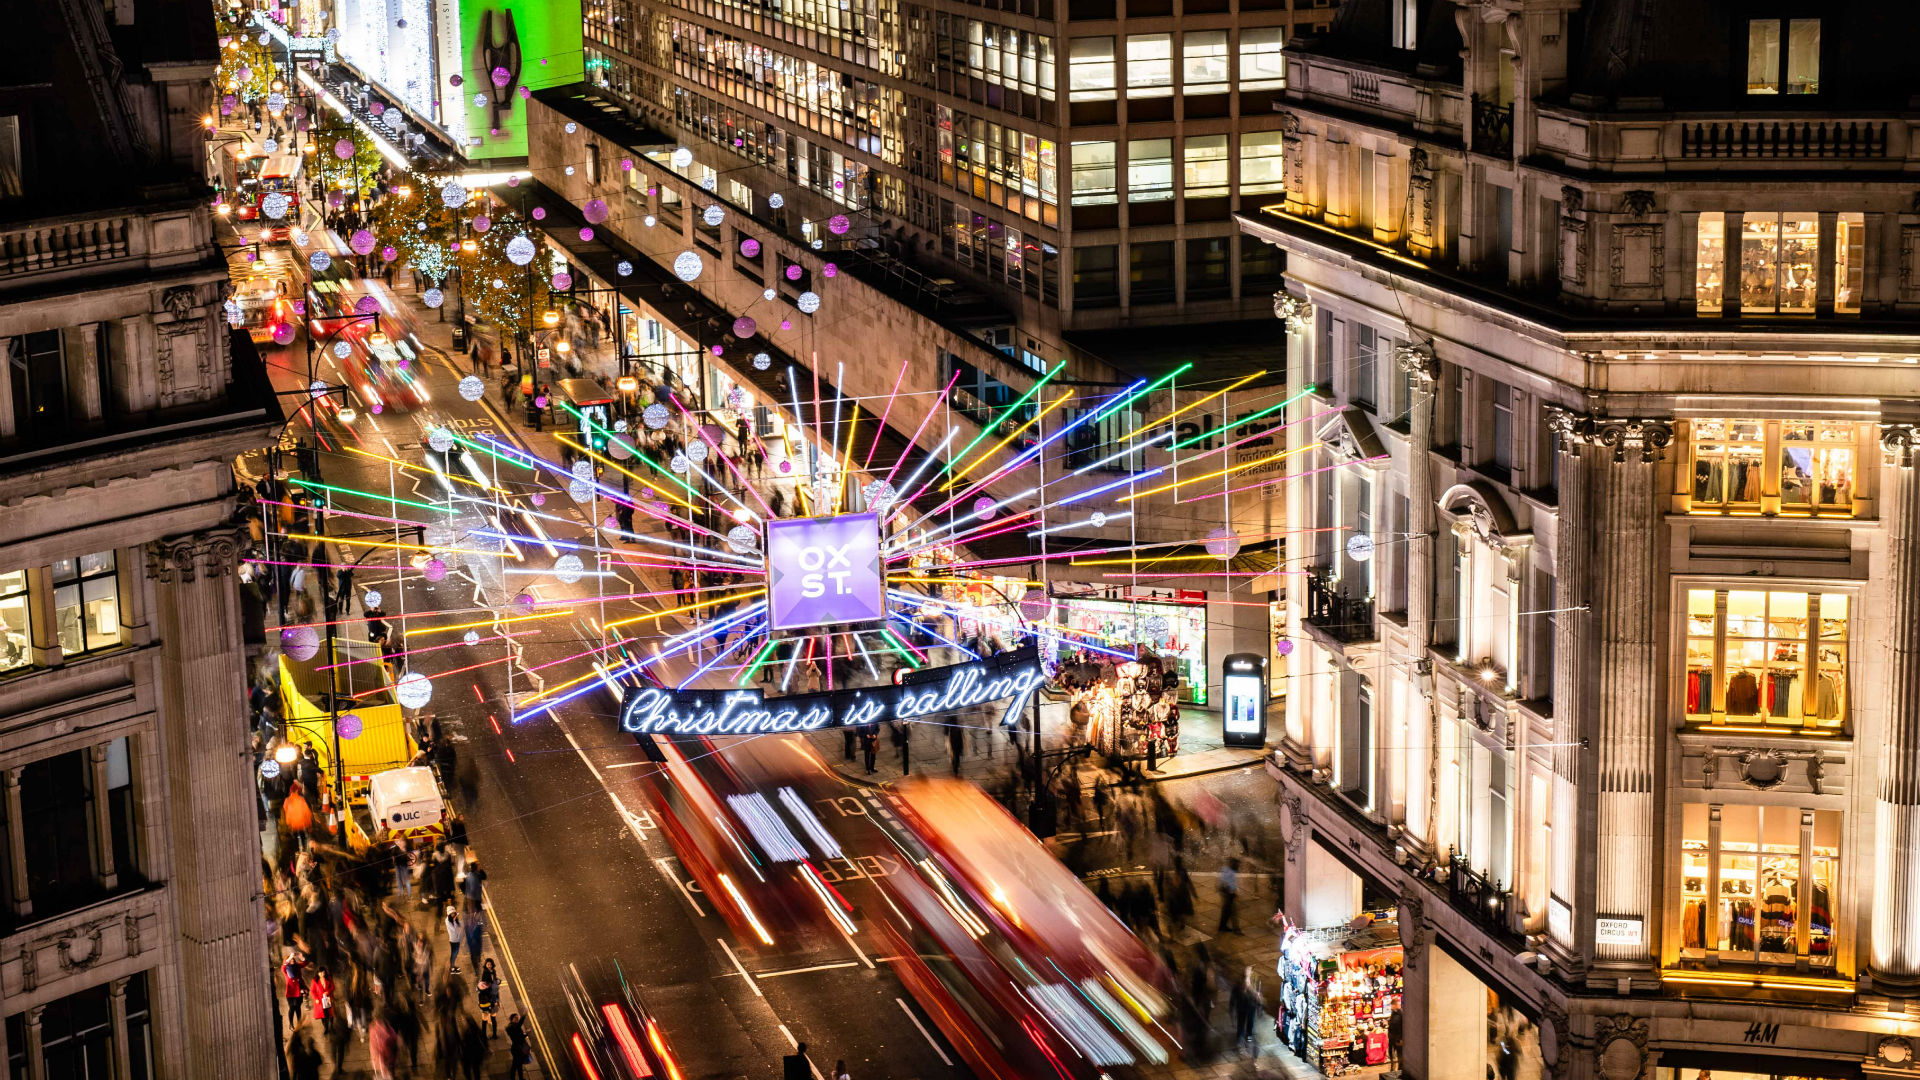 Rainbow-coloured Christmas lights sparkle above the buzzing streets of Oxford Street at night.